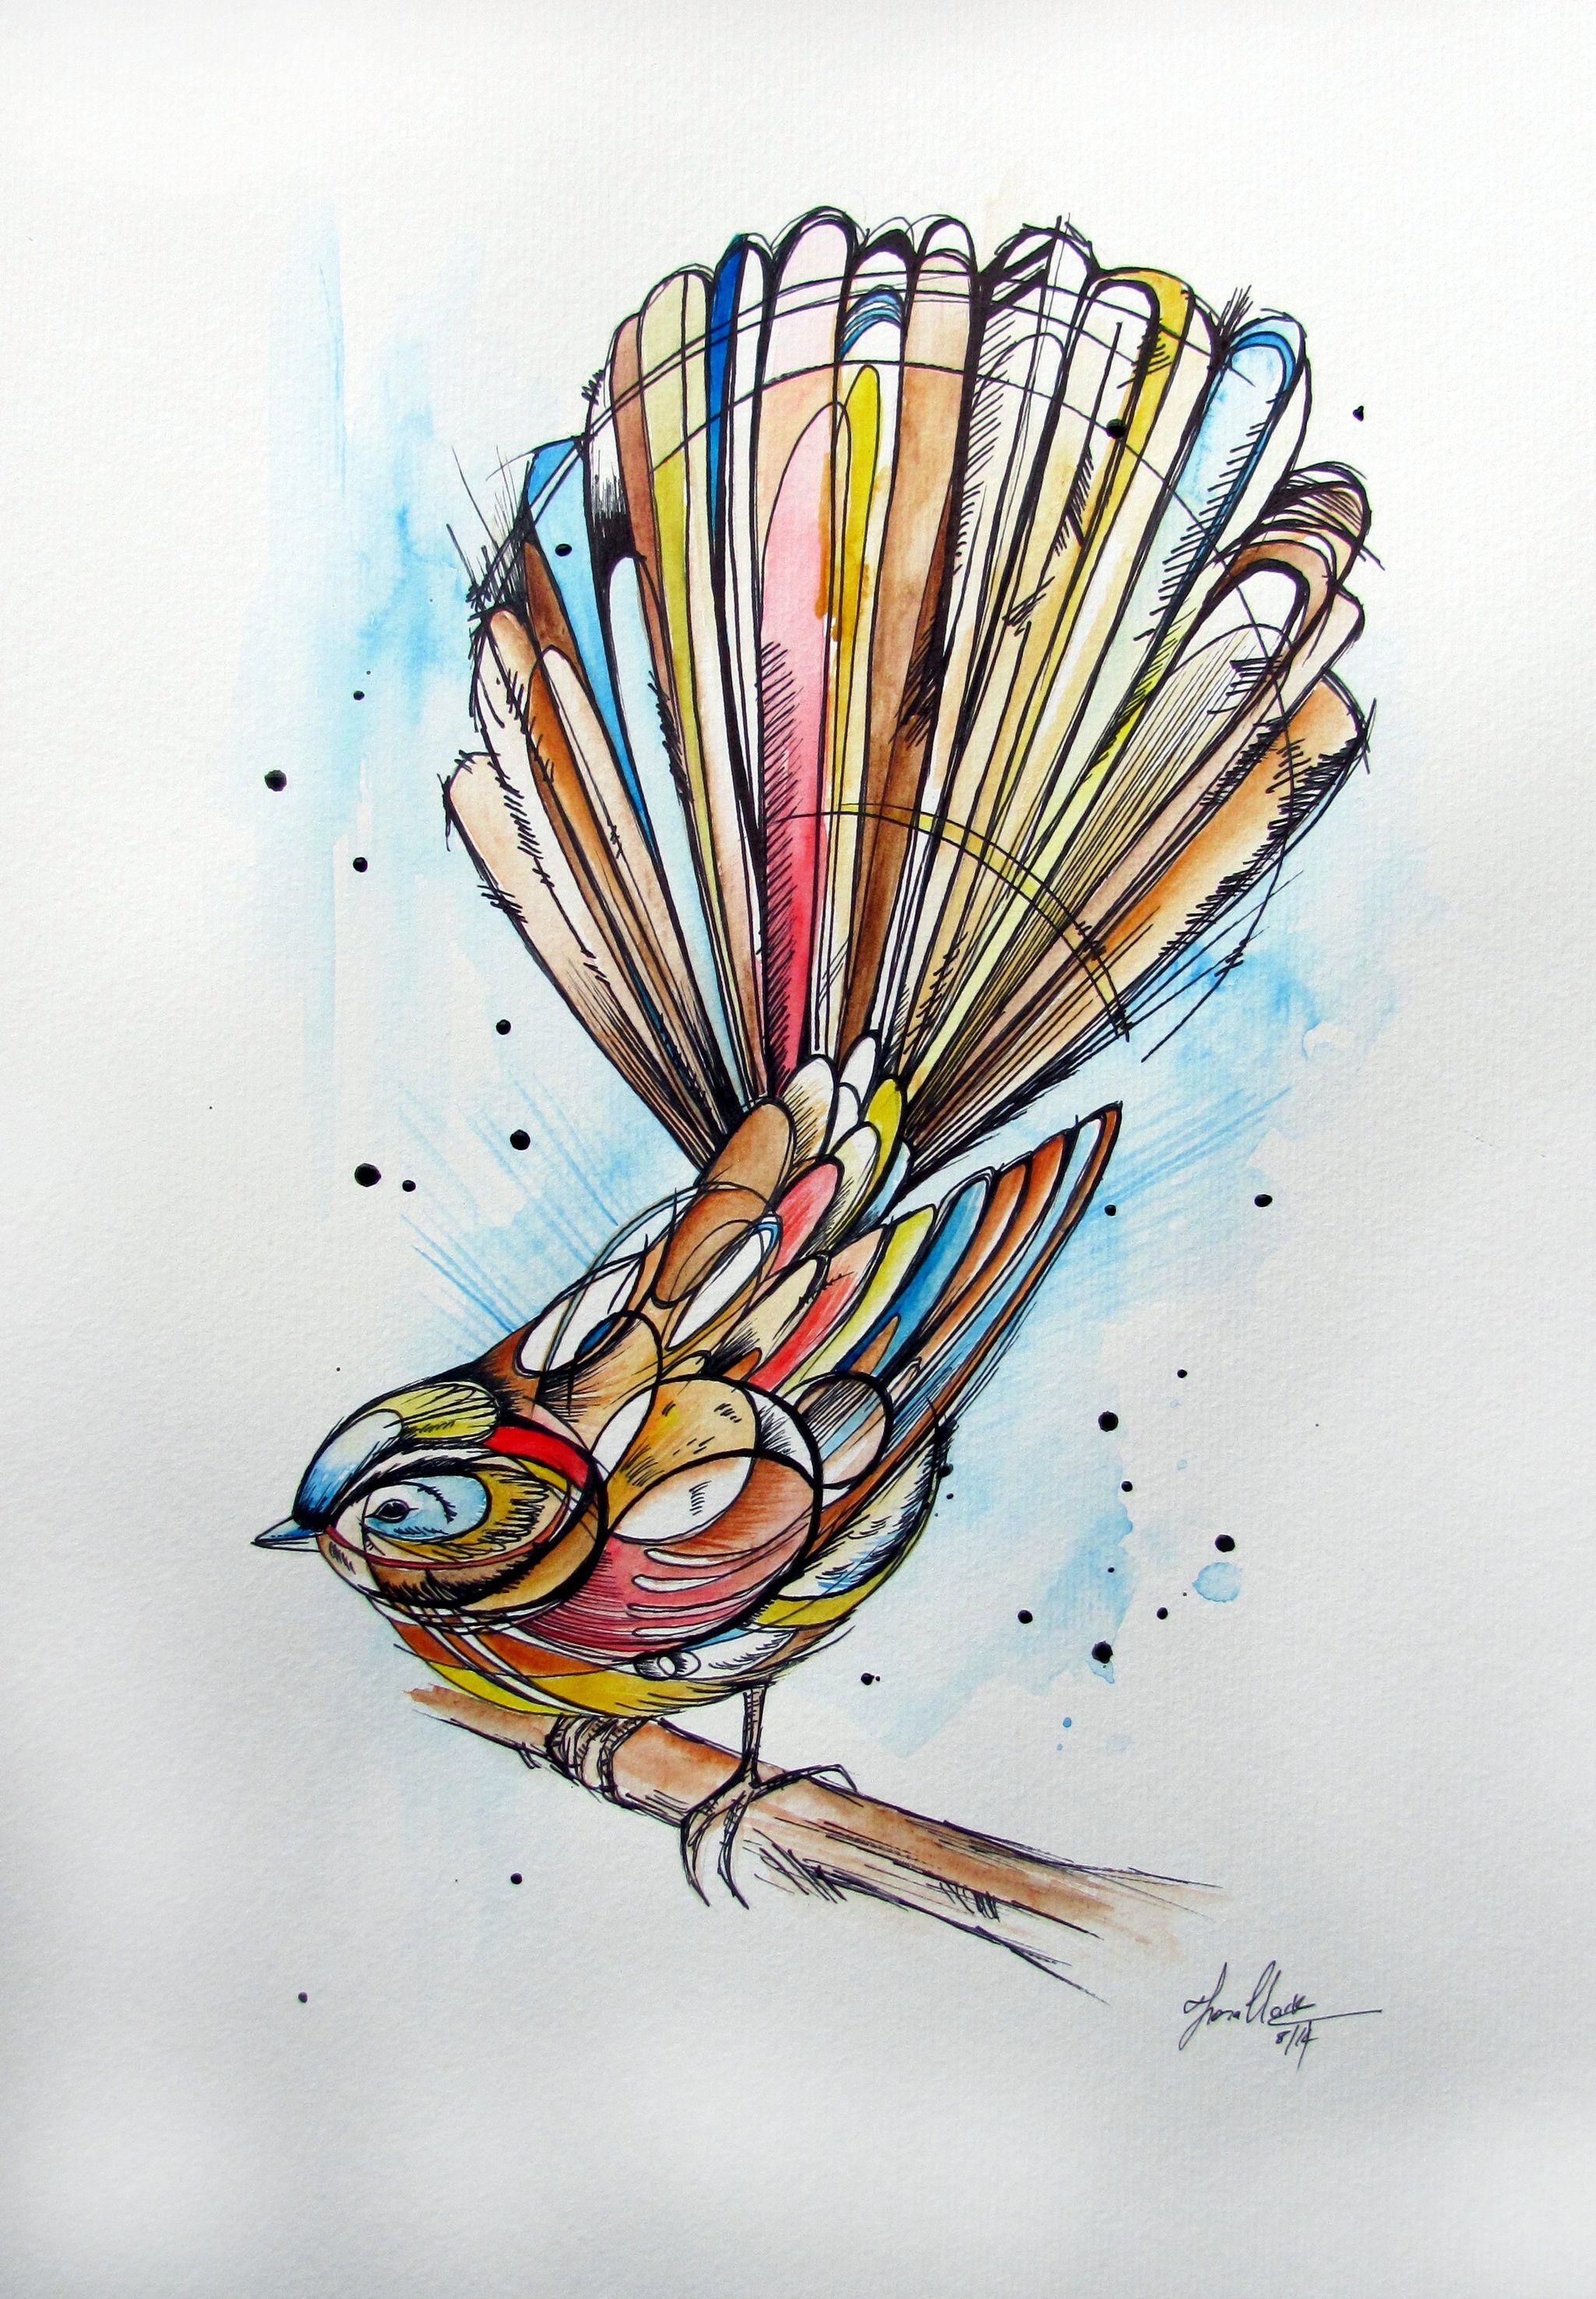 Tattoo Fantail Watercolor Painting Illustration By Www Fiona